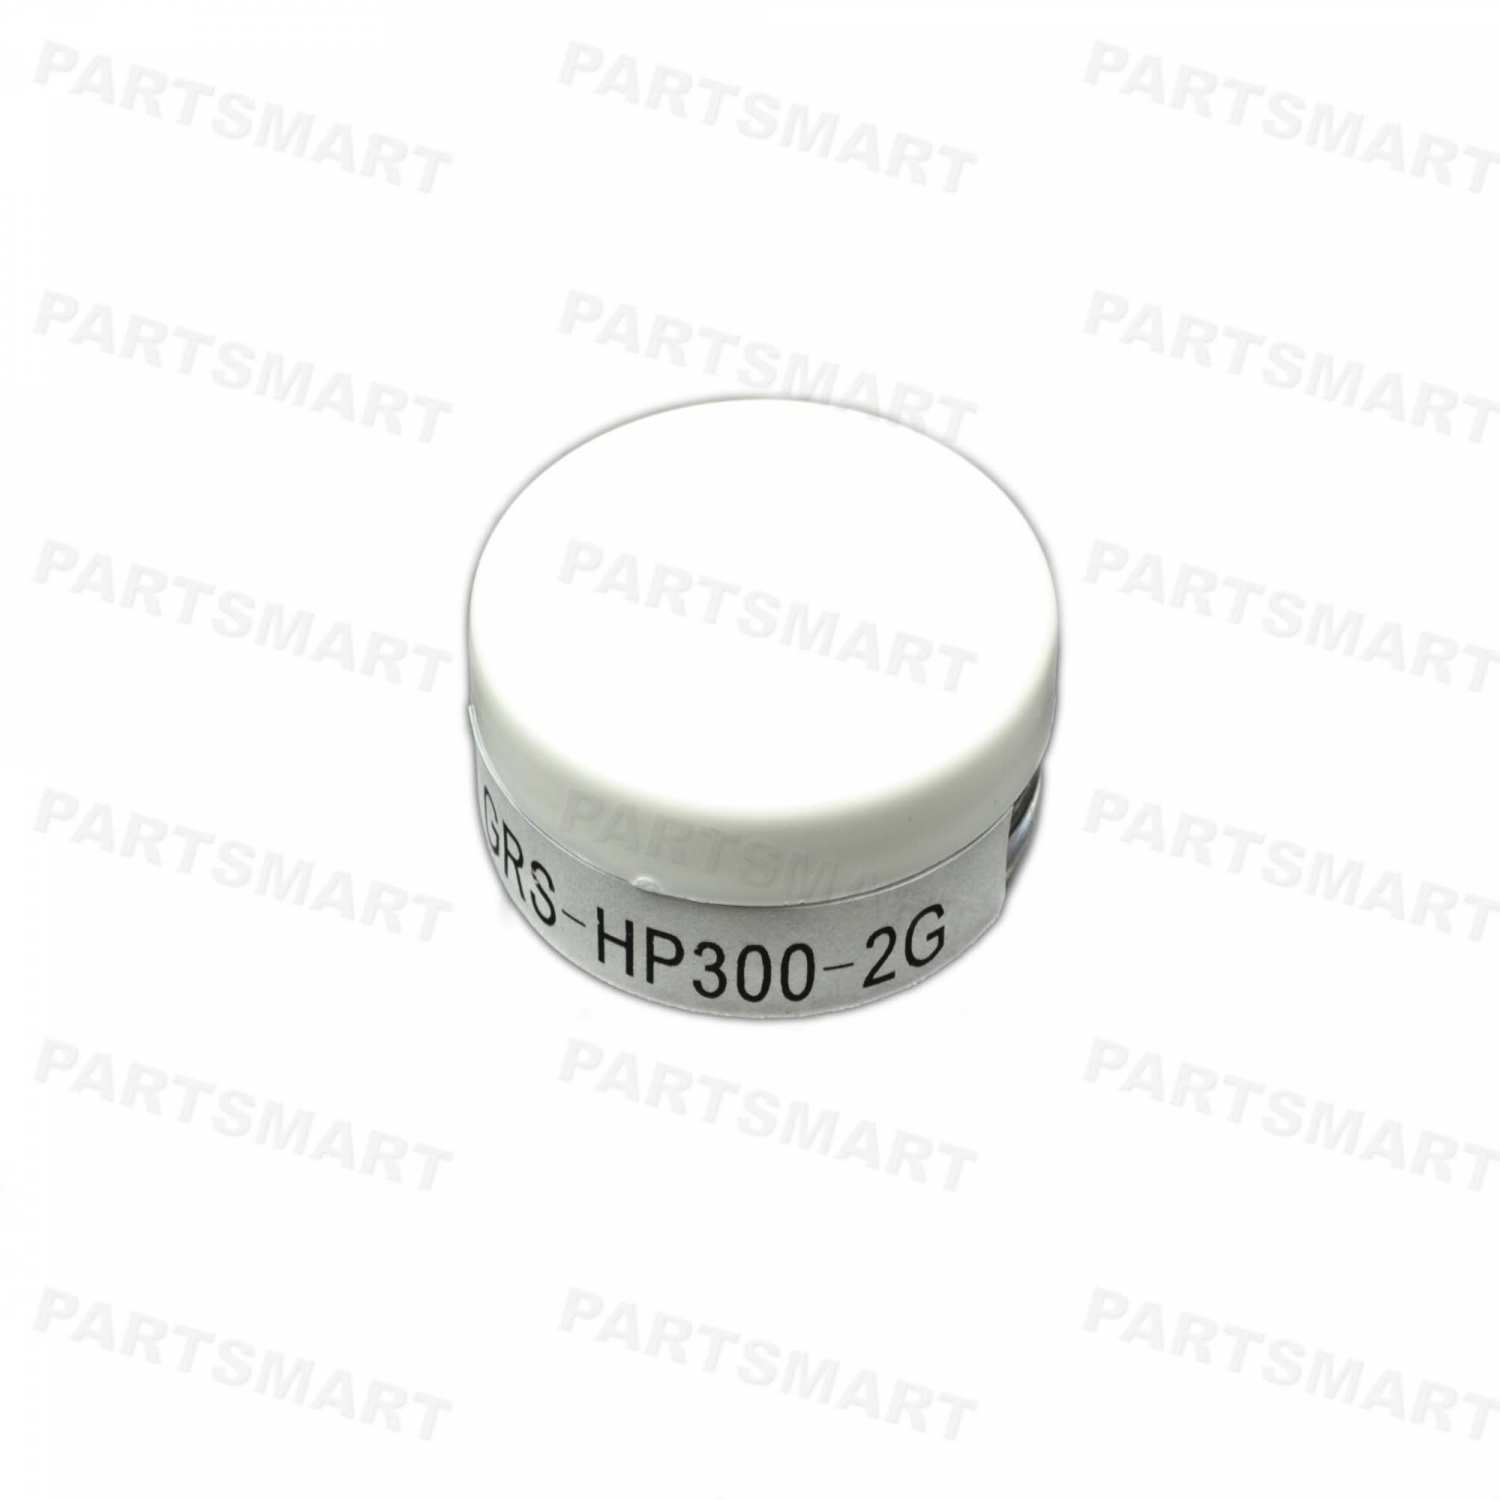 GRS-HP300-2G OEM Grease for Film Sleeve, 2g for Others Misc